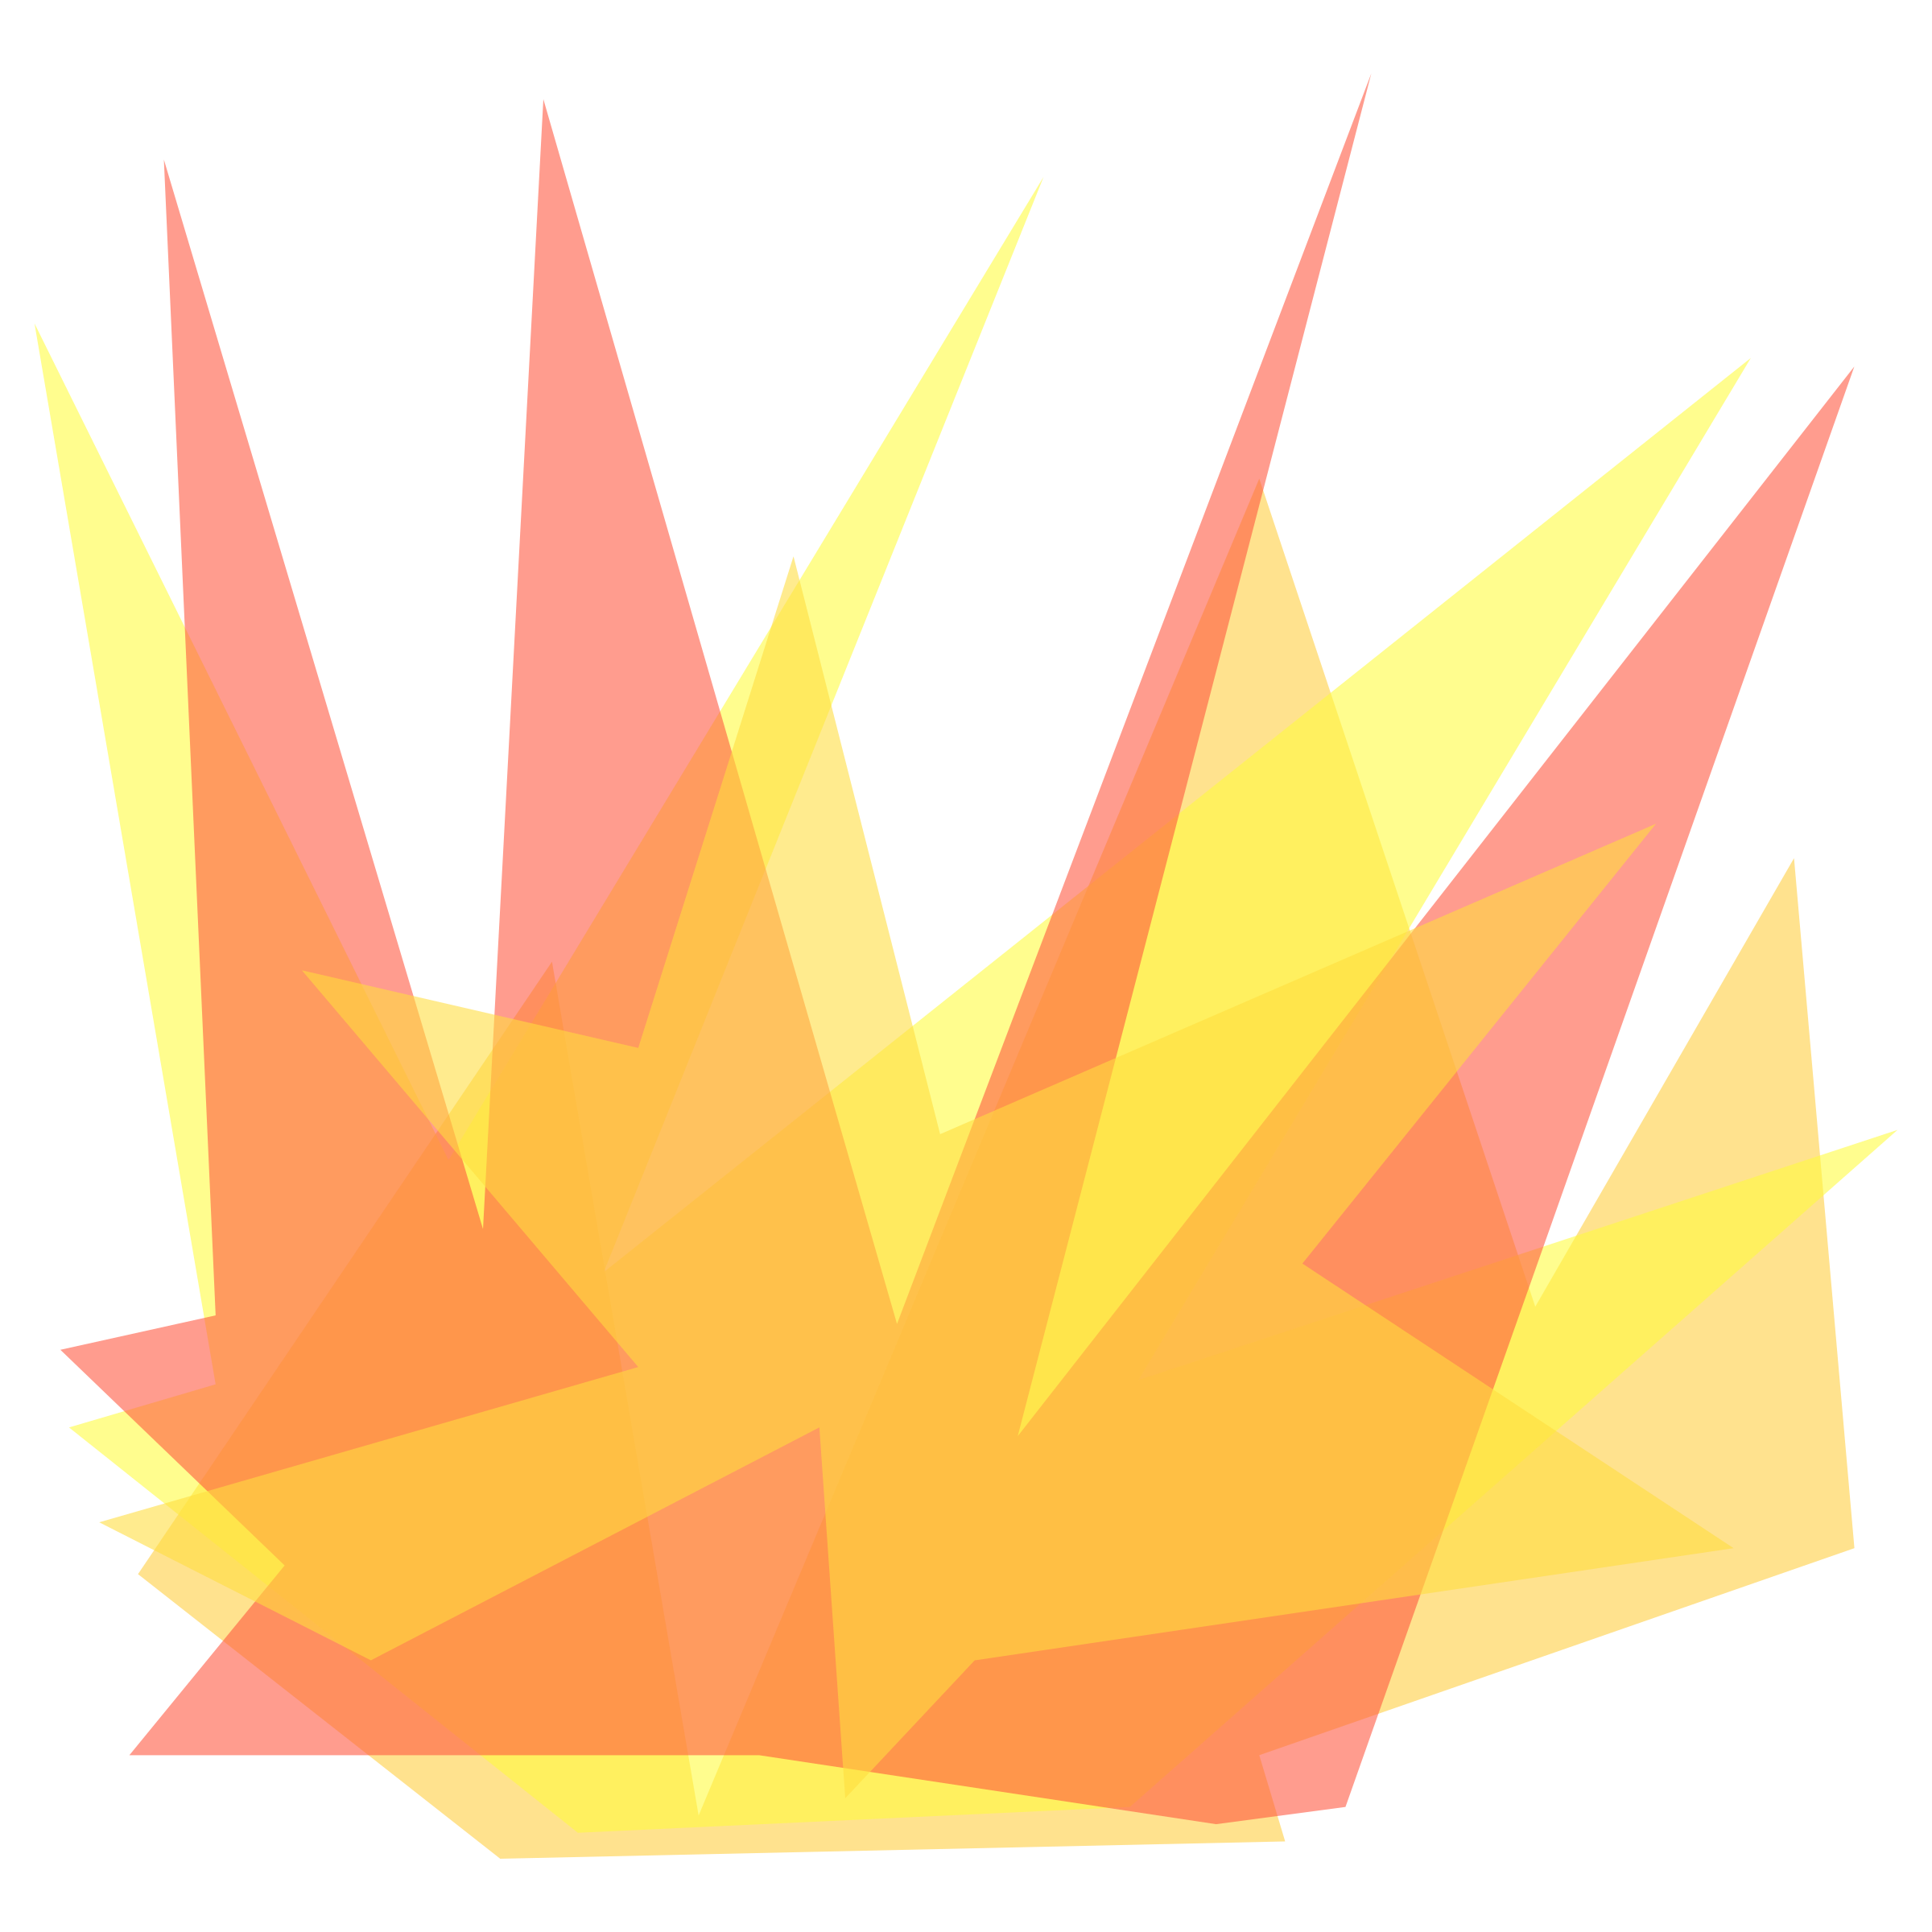 Firework explosions clipart clipart.